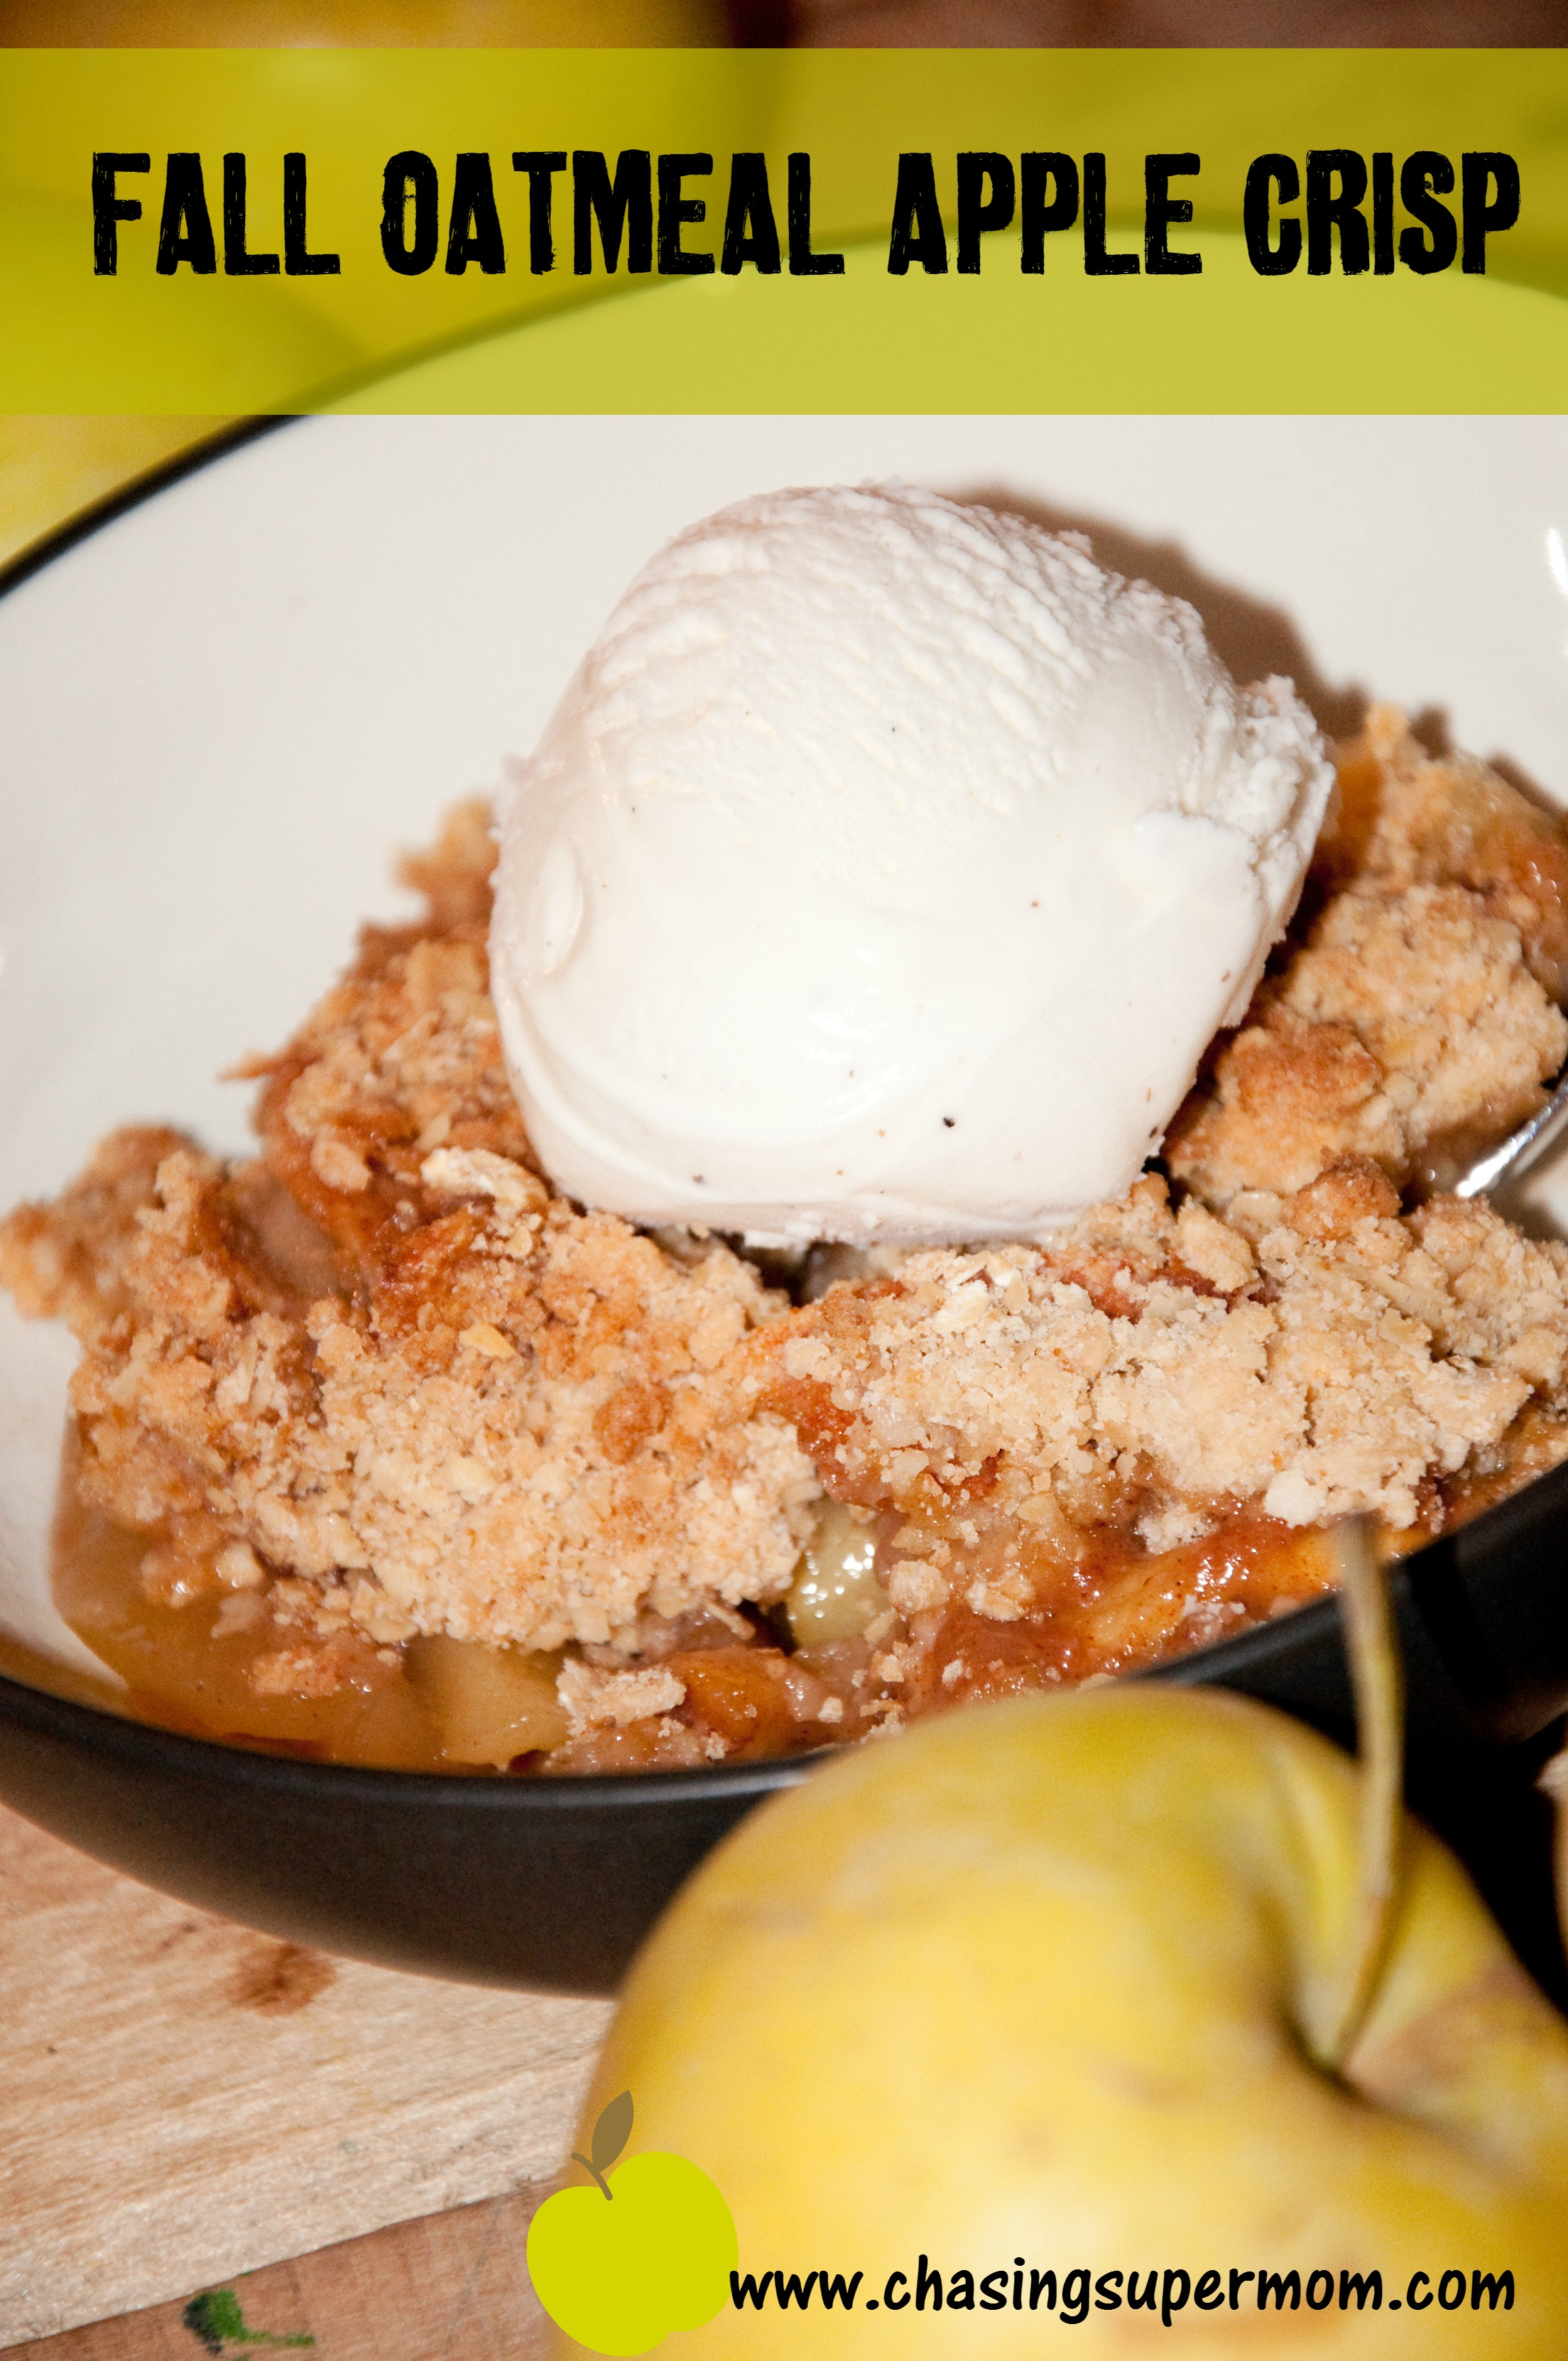 Fall Oatmeal Apple Crisp